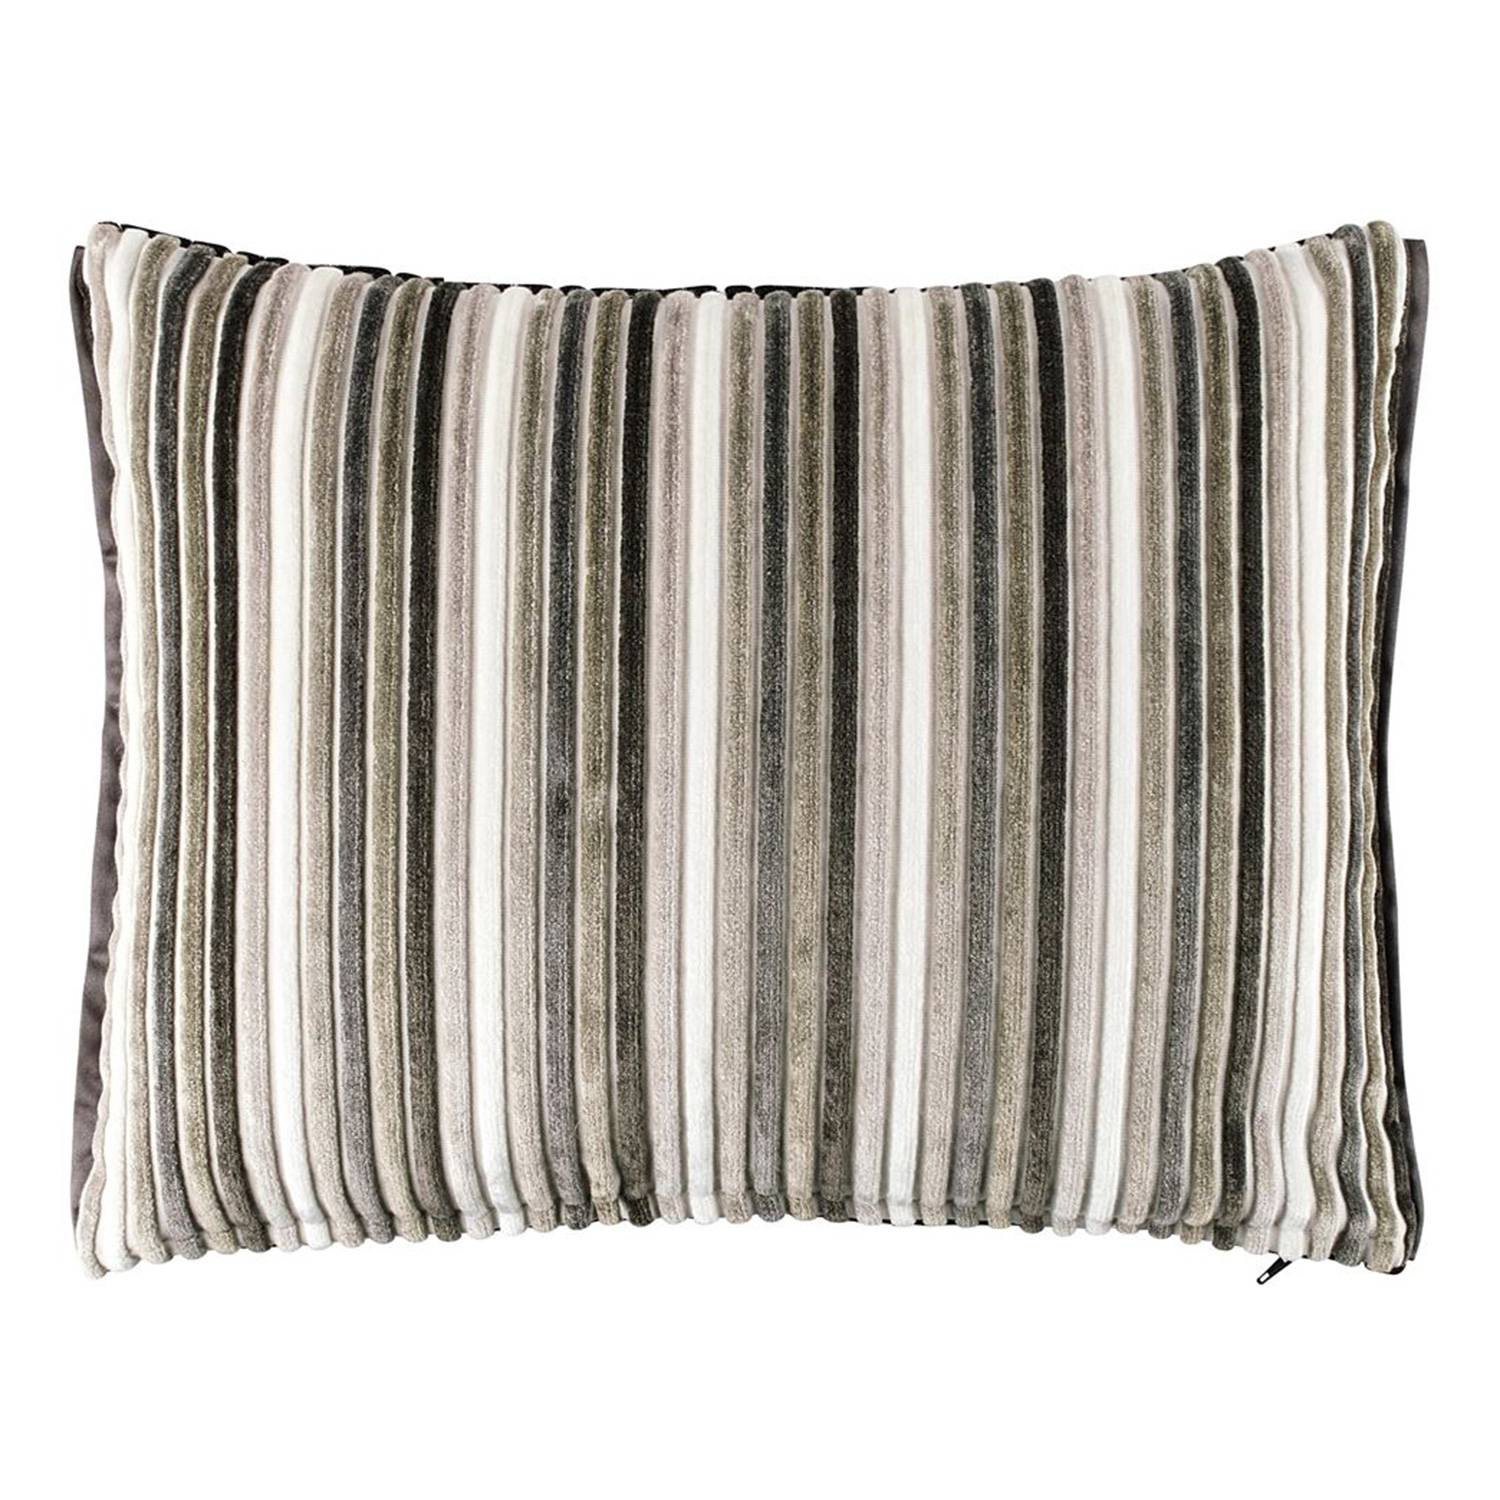 Designers Guild Marshall Natural Tyyny 40x30cm